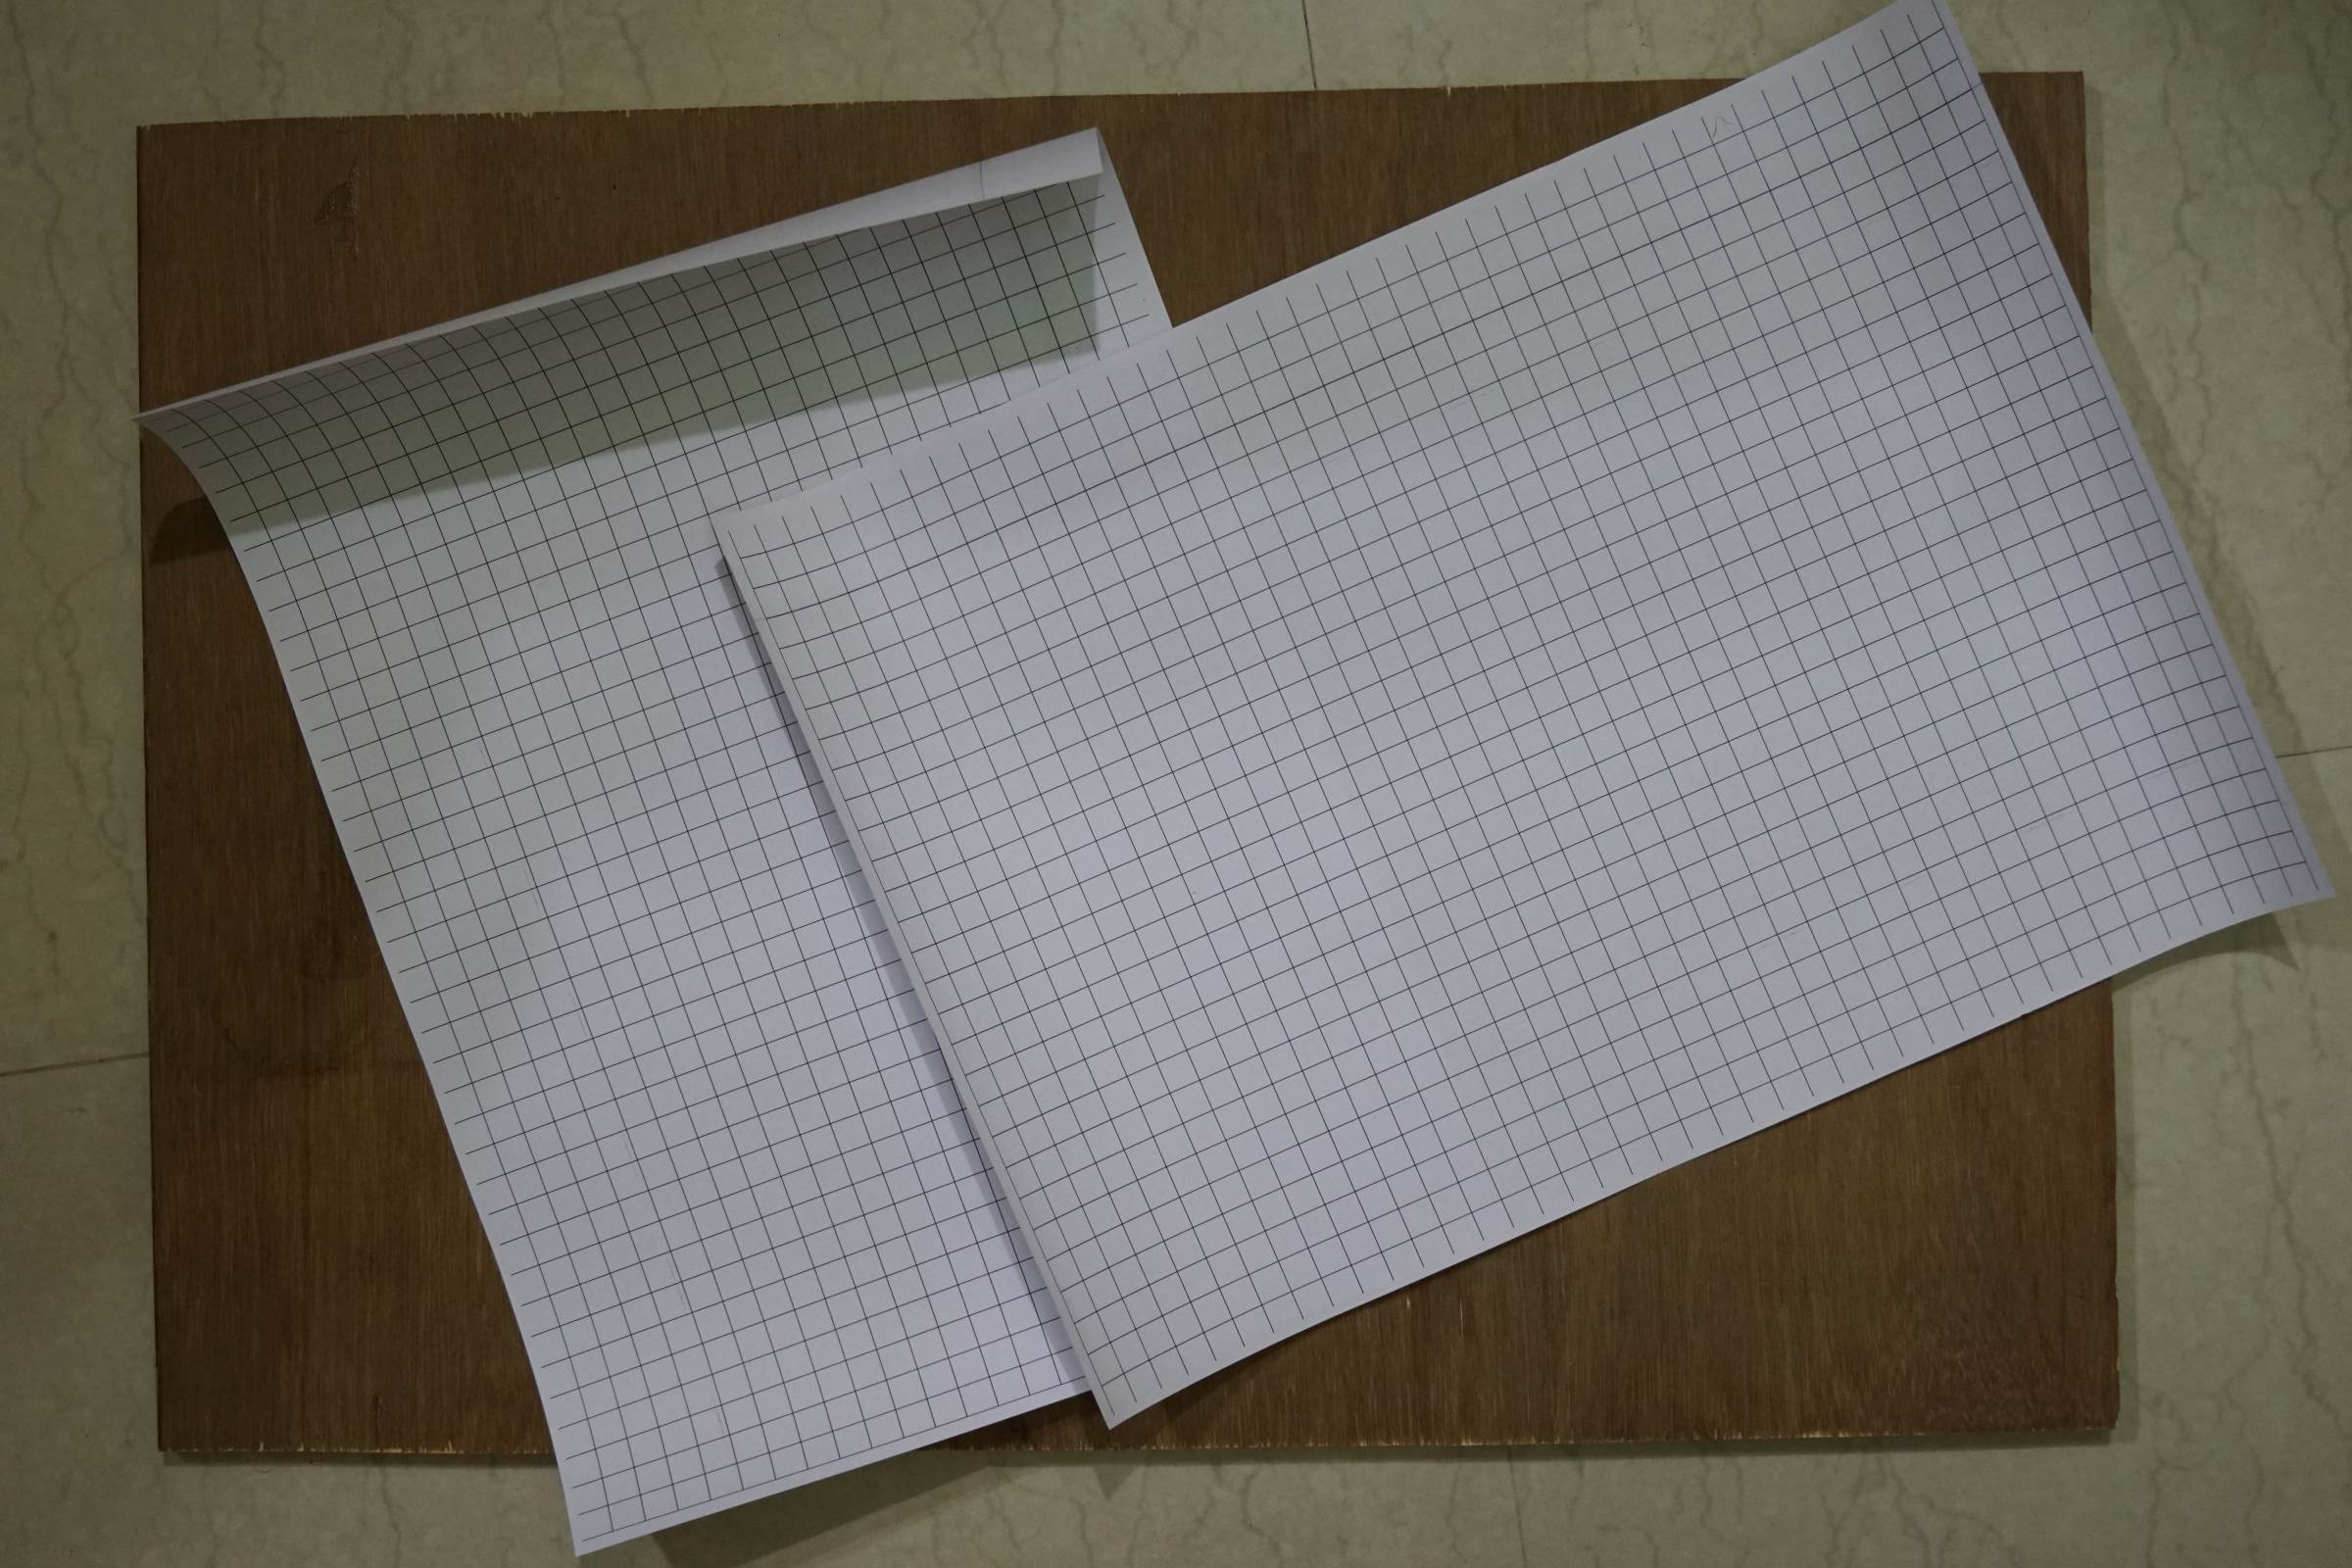 Grid Paper for pasting on Ply Wood and MDF Boards for easy cutting